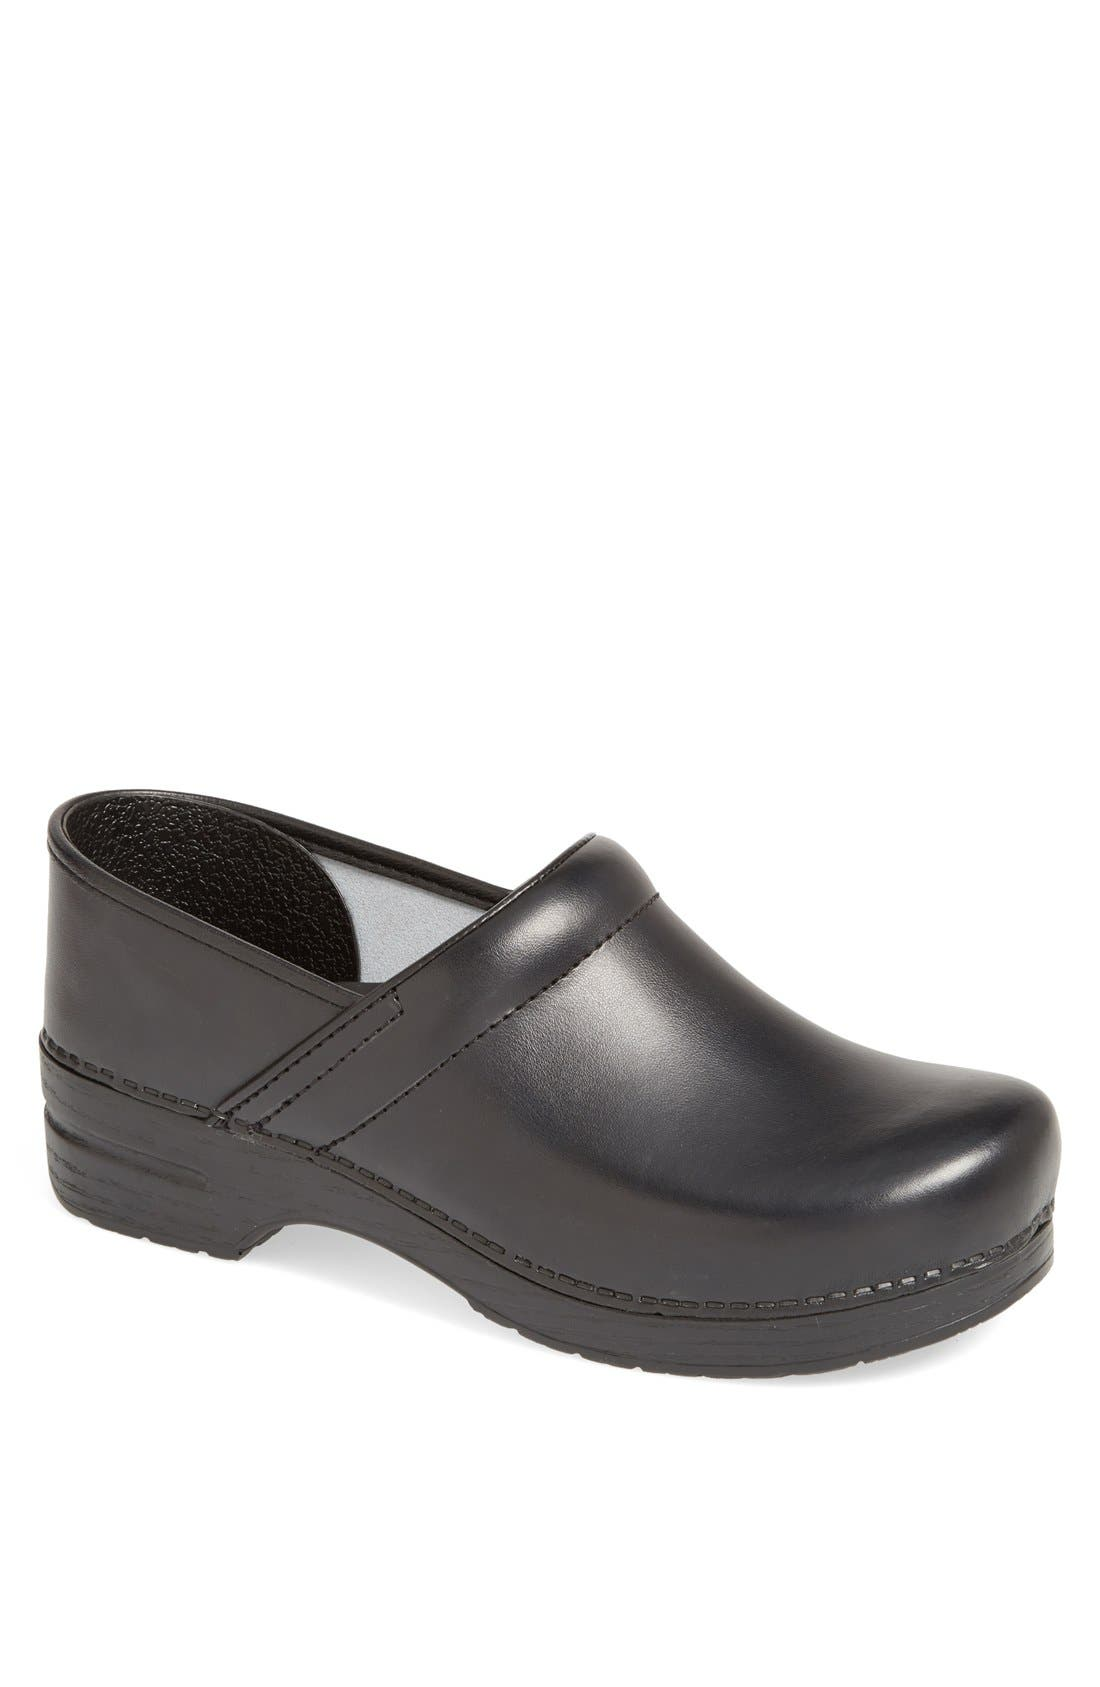 DANSKO 'Professional' Slip-On, Main, color, BLACK BOX